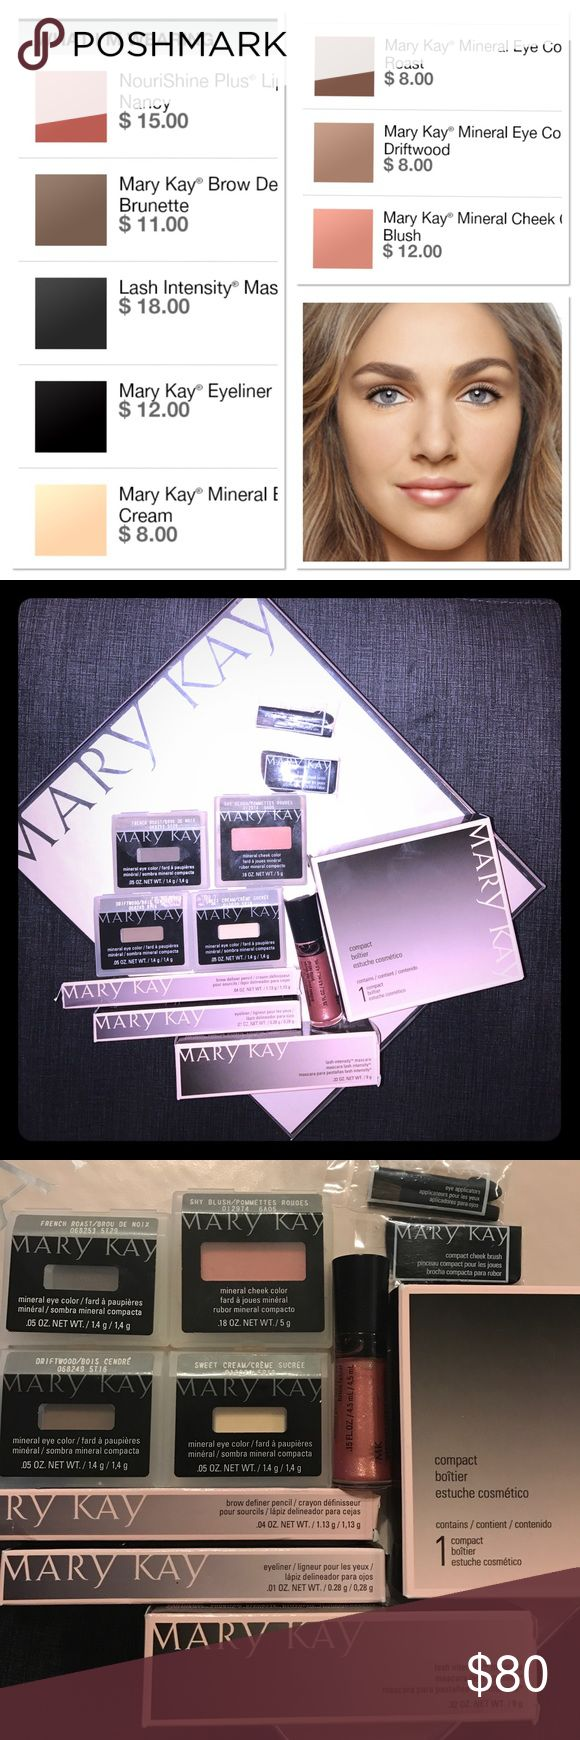 MaryKay - Get This Look Complete Natural Look that can be worn day or night! Includes in this bundle are 3 Mineral Eye Shadows- Sweet Cream, French Roast & Driftwood. 1 - Mineral Cheek Color in Sky Blush, Black Eye Liner, Lash Intensity Mascara-black, 1- Brow Defining Pencil in Brunette, 1- NouriShine Lip Gloss in Fancy Nancy. MaryKay Compact to safety store and take with you the 3 shadows, check color, applicators and lip color. Total Retail Value $115.00! Mary Kay Makeup